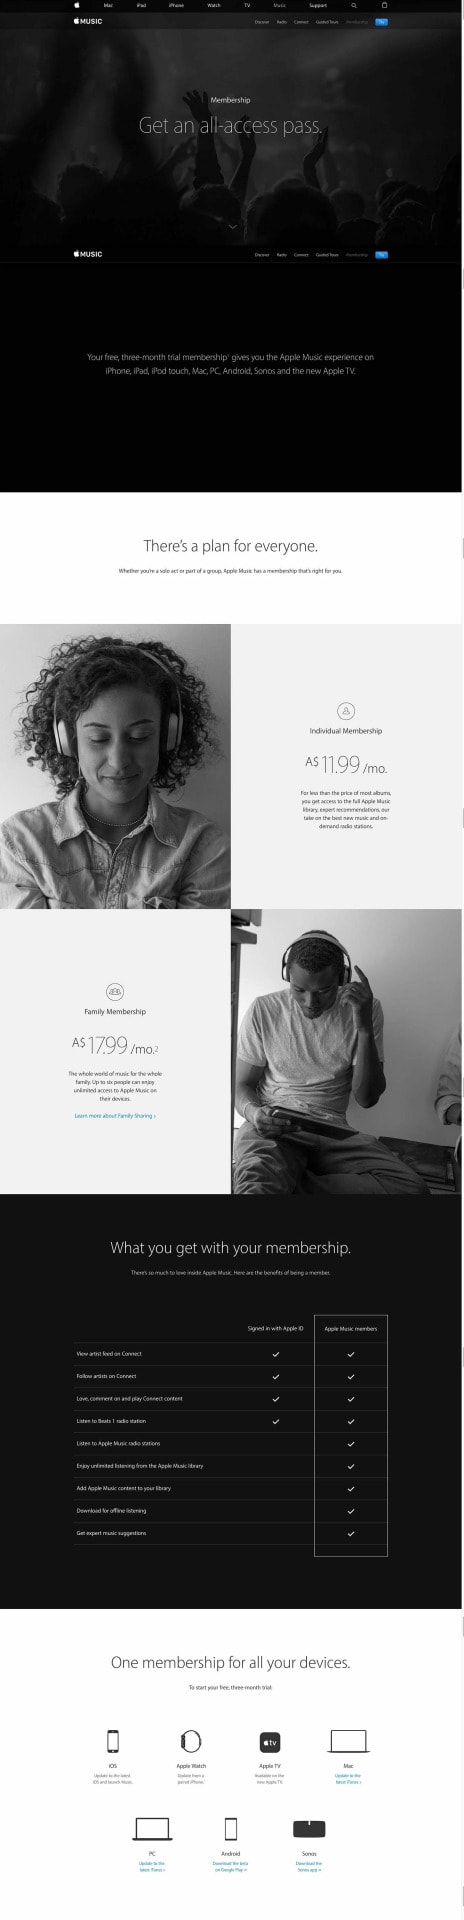 Pricing page by Apple Music from UIGarage